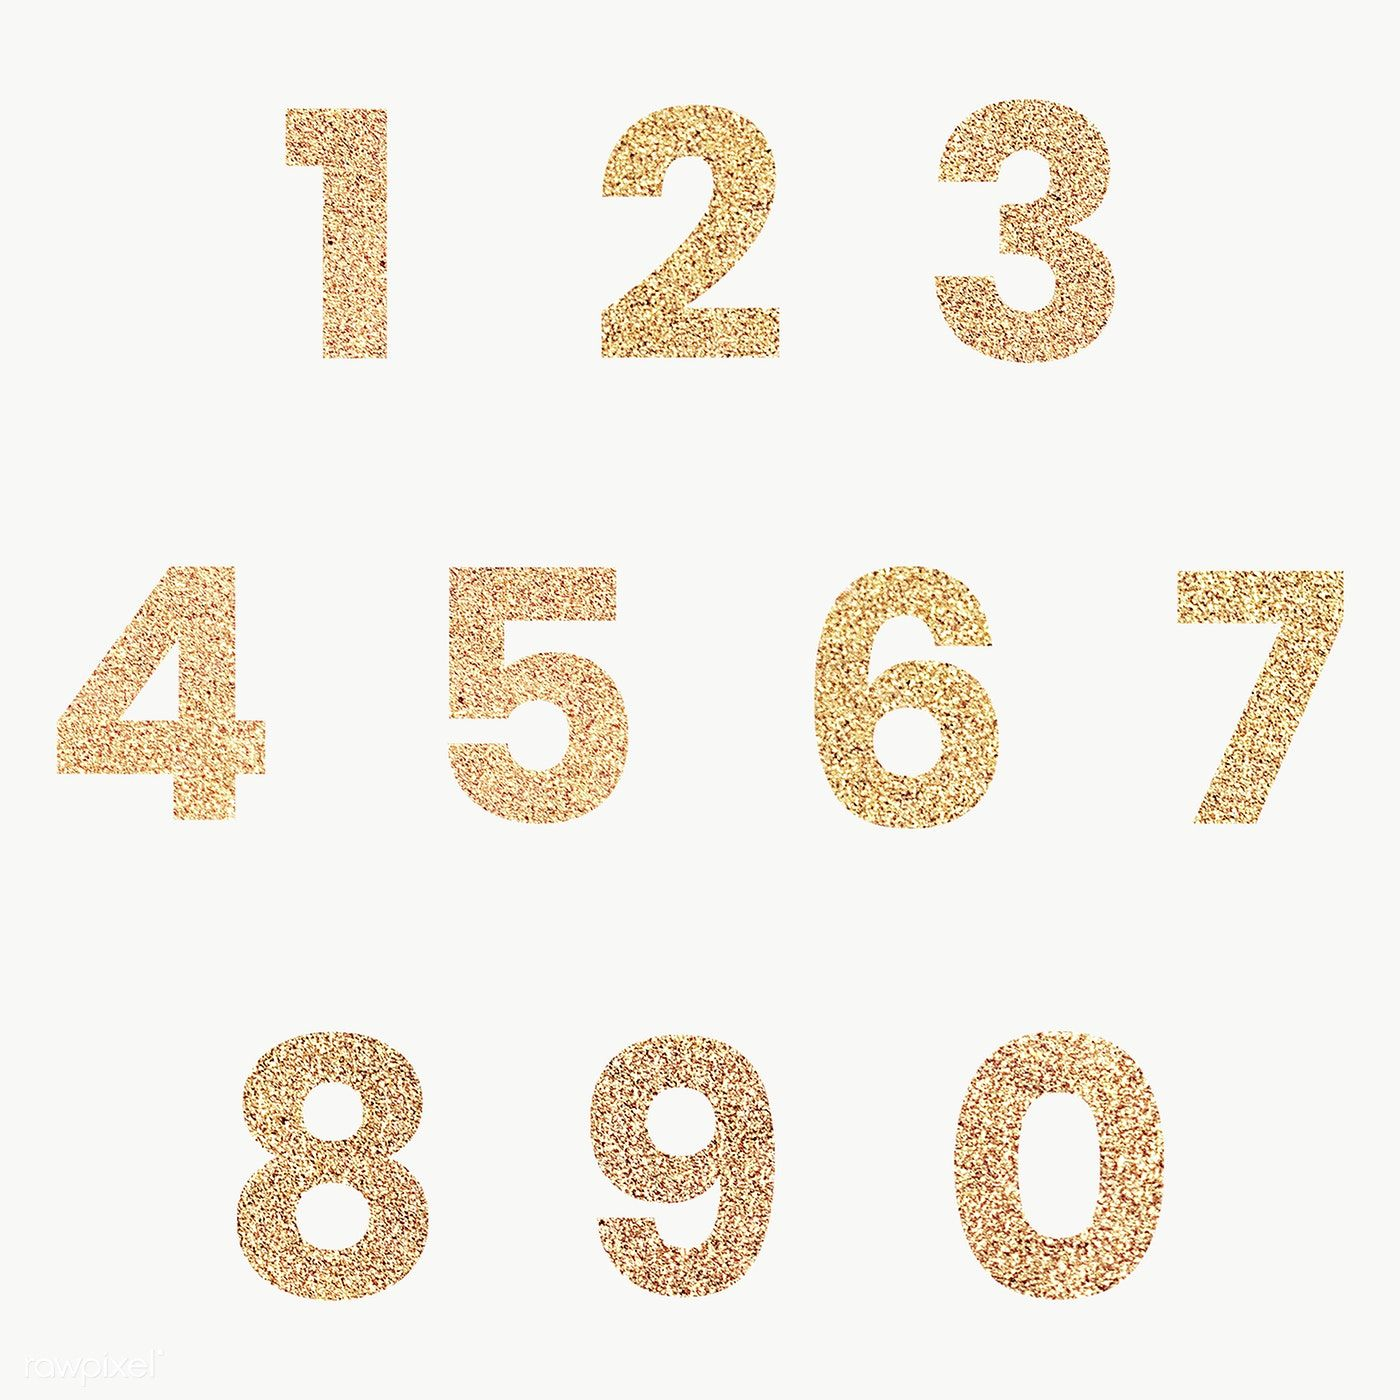 Glitter Number Collection Transparent Png Free Image By Rawpixel Com Ningzk V Image Glitter Numbers Typography Gold Typography